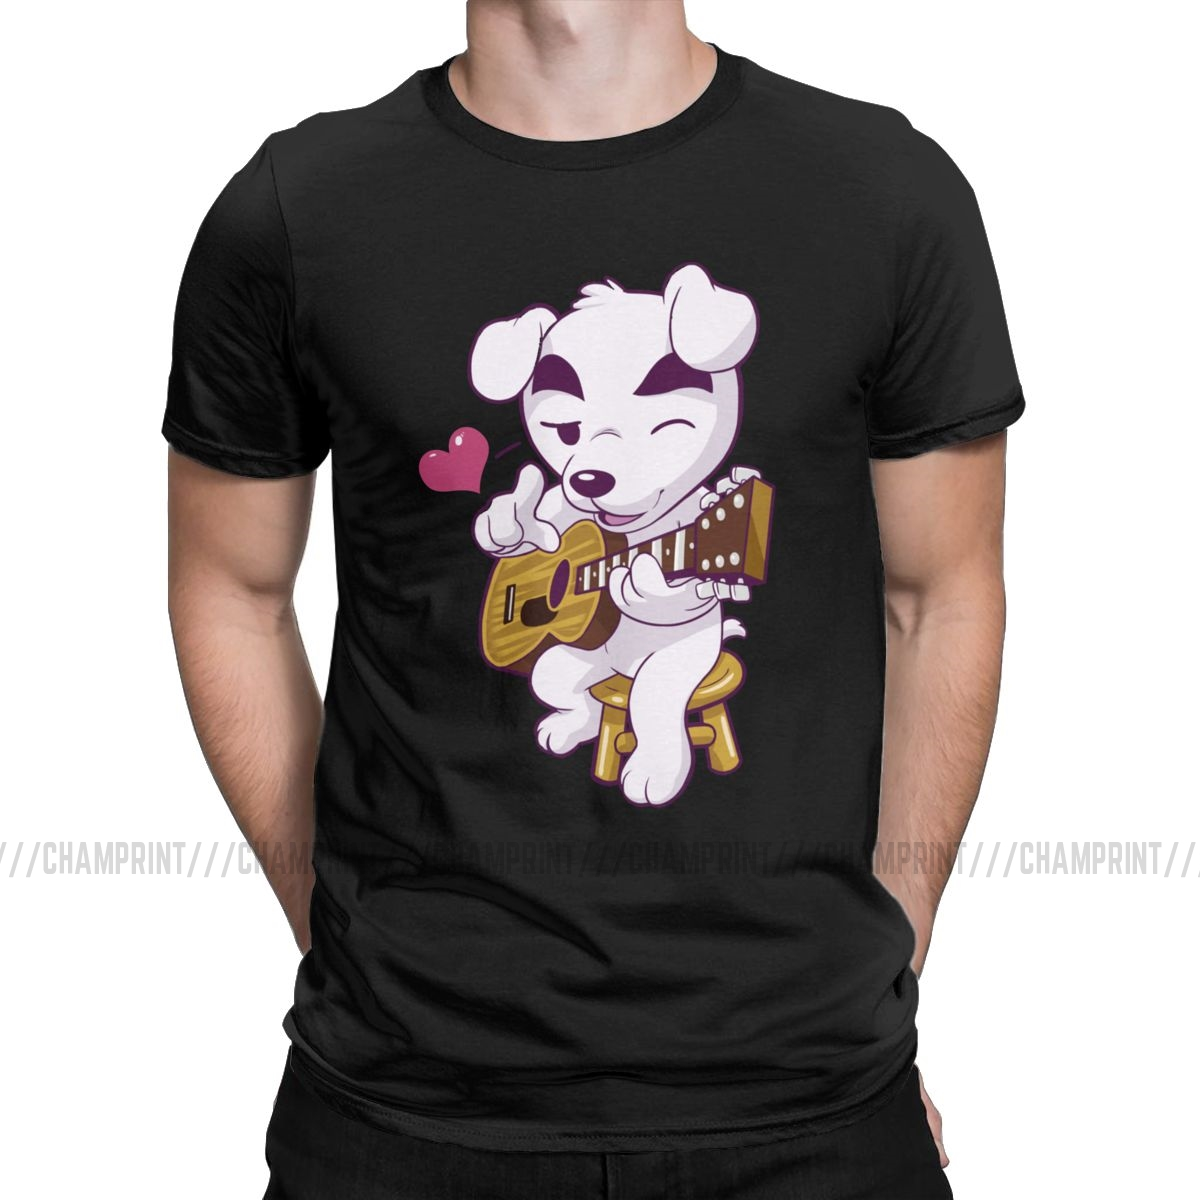 This Song Is For You T Shirts Men 100% Cotton Novelty T-Shirts Animal Crossing Video Games Tee Shirt New Arrival Clothing image